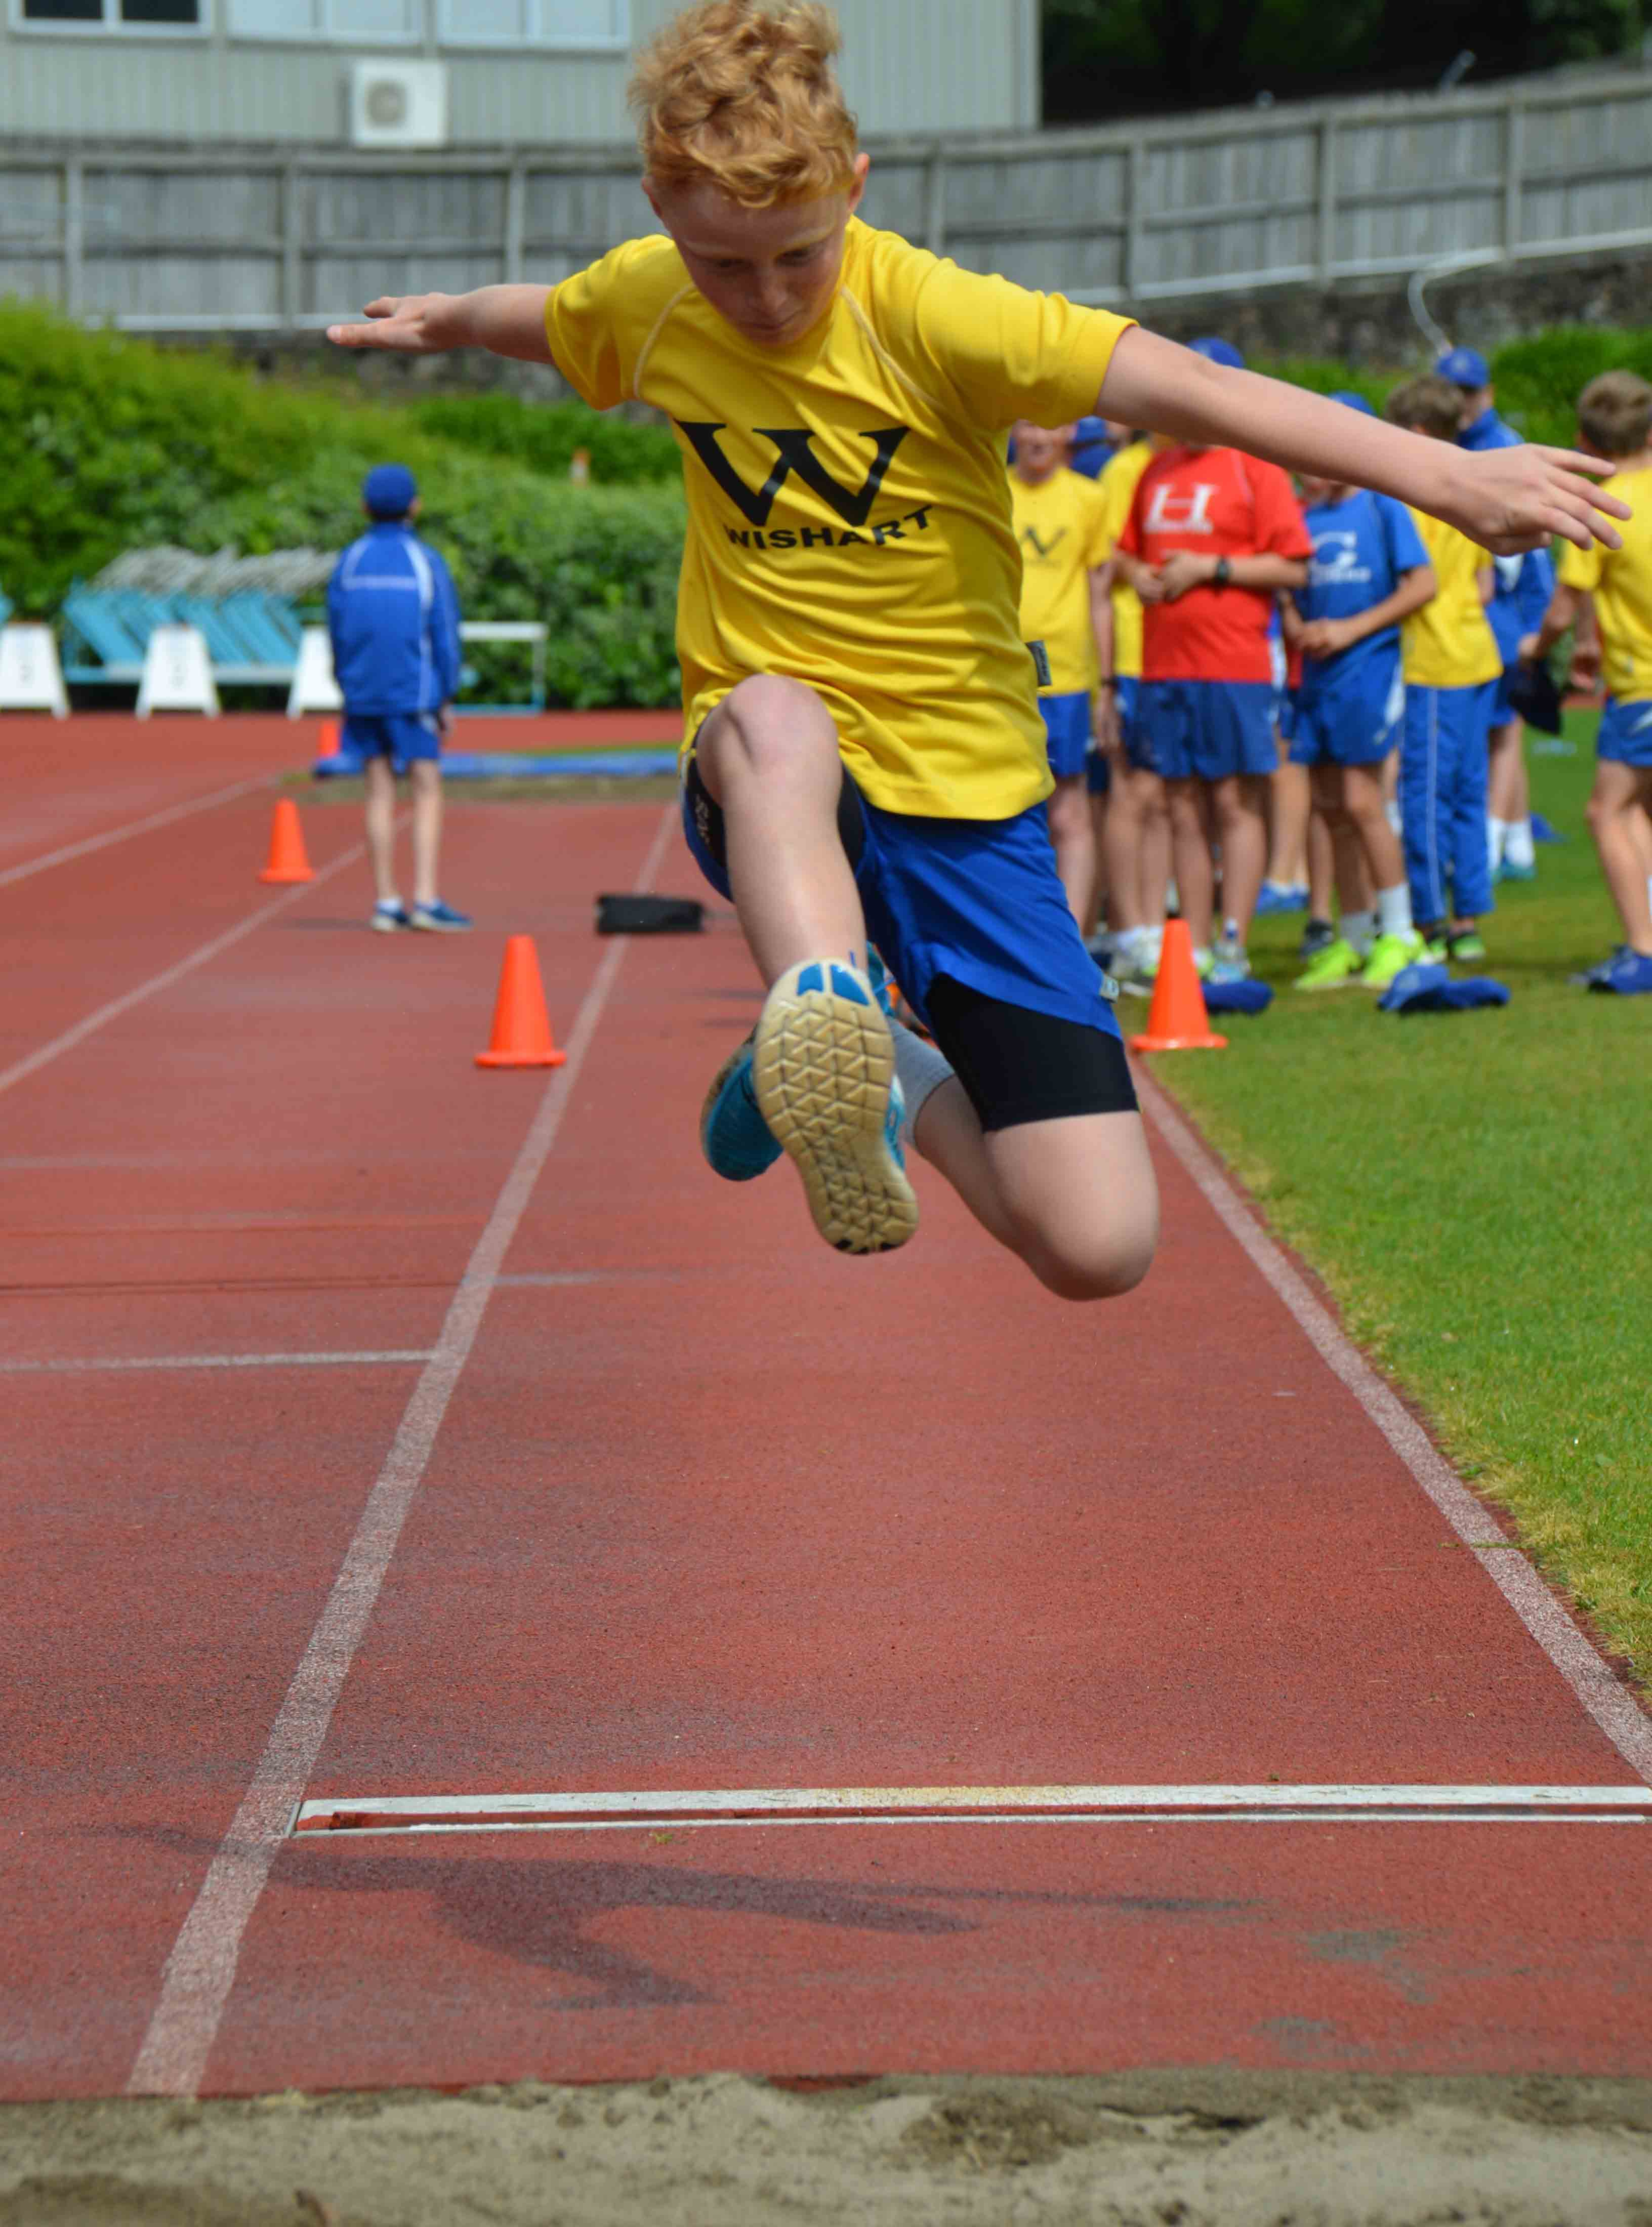 Saint-Kentigern-Boys'-Schoo-Sport-Long-Jump.jpg